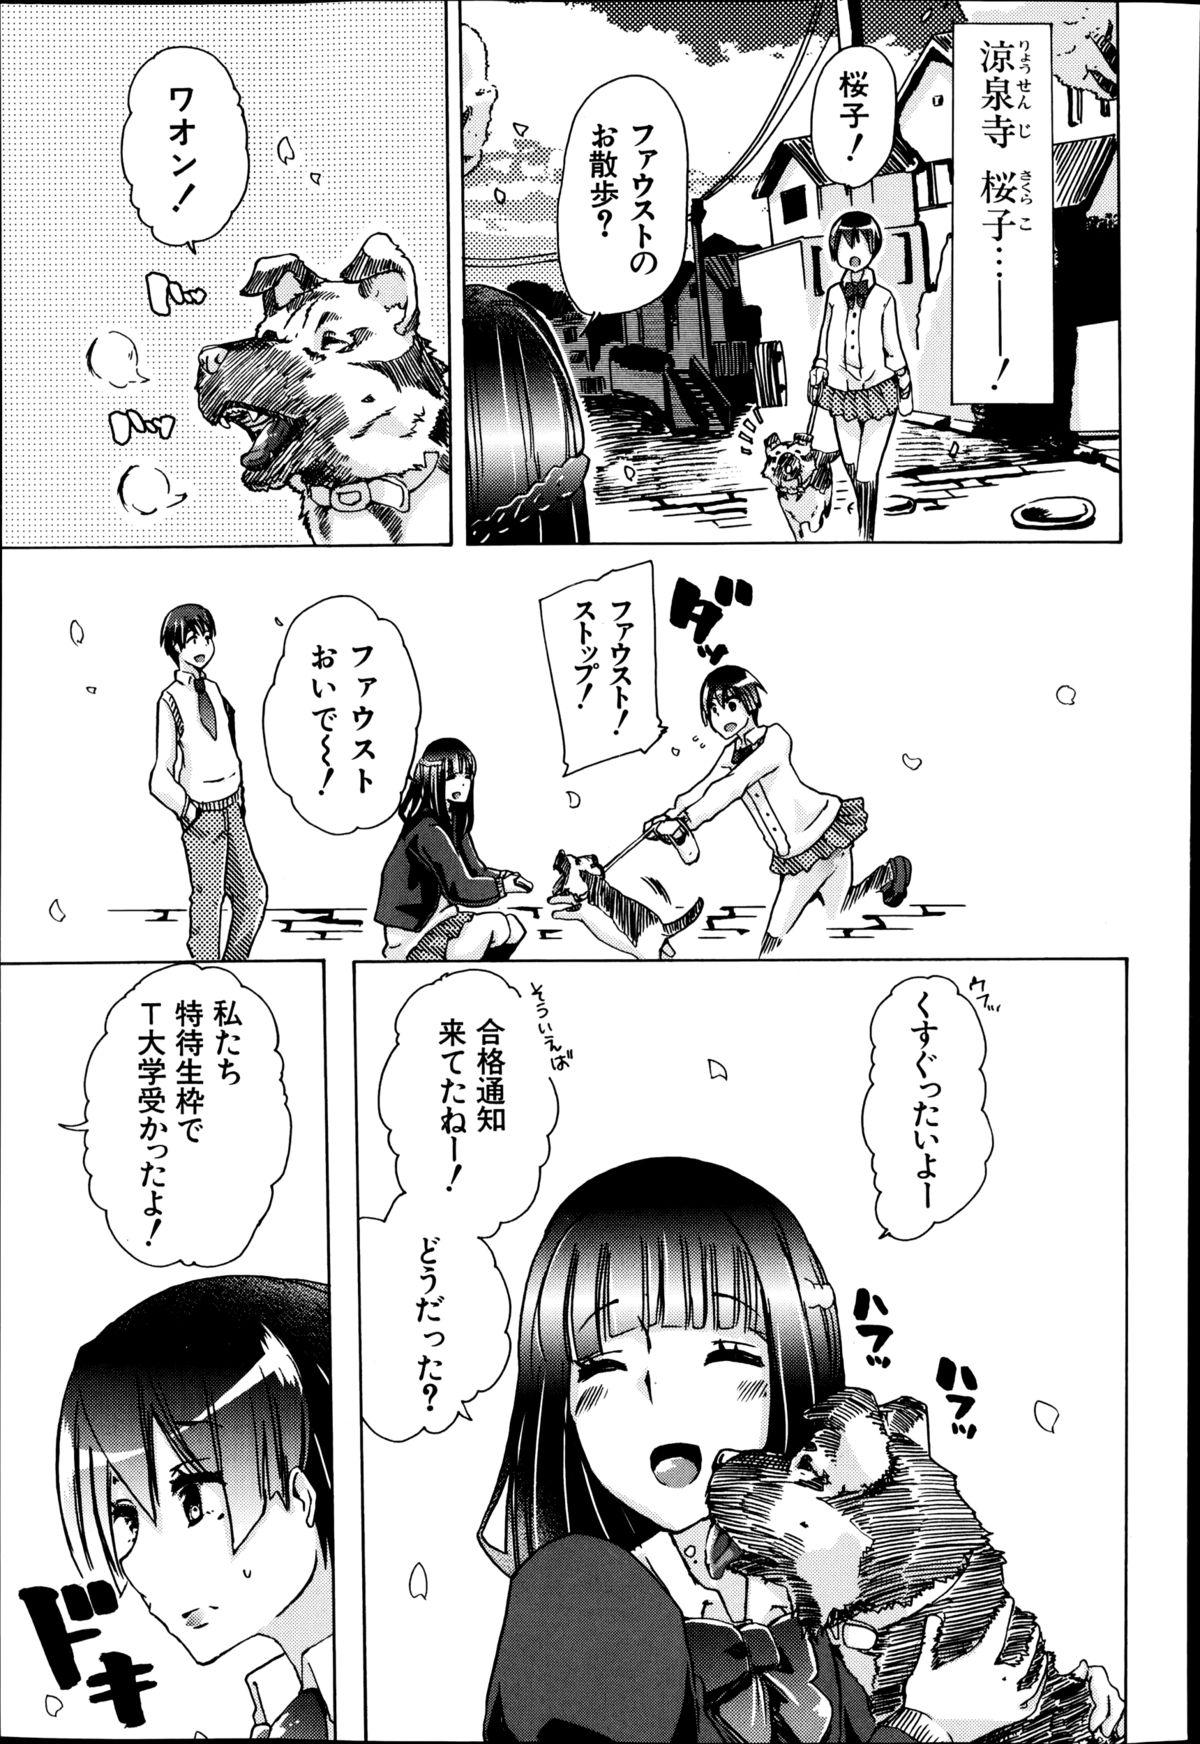 BUSTER COMIC 2014-09 206